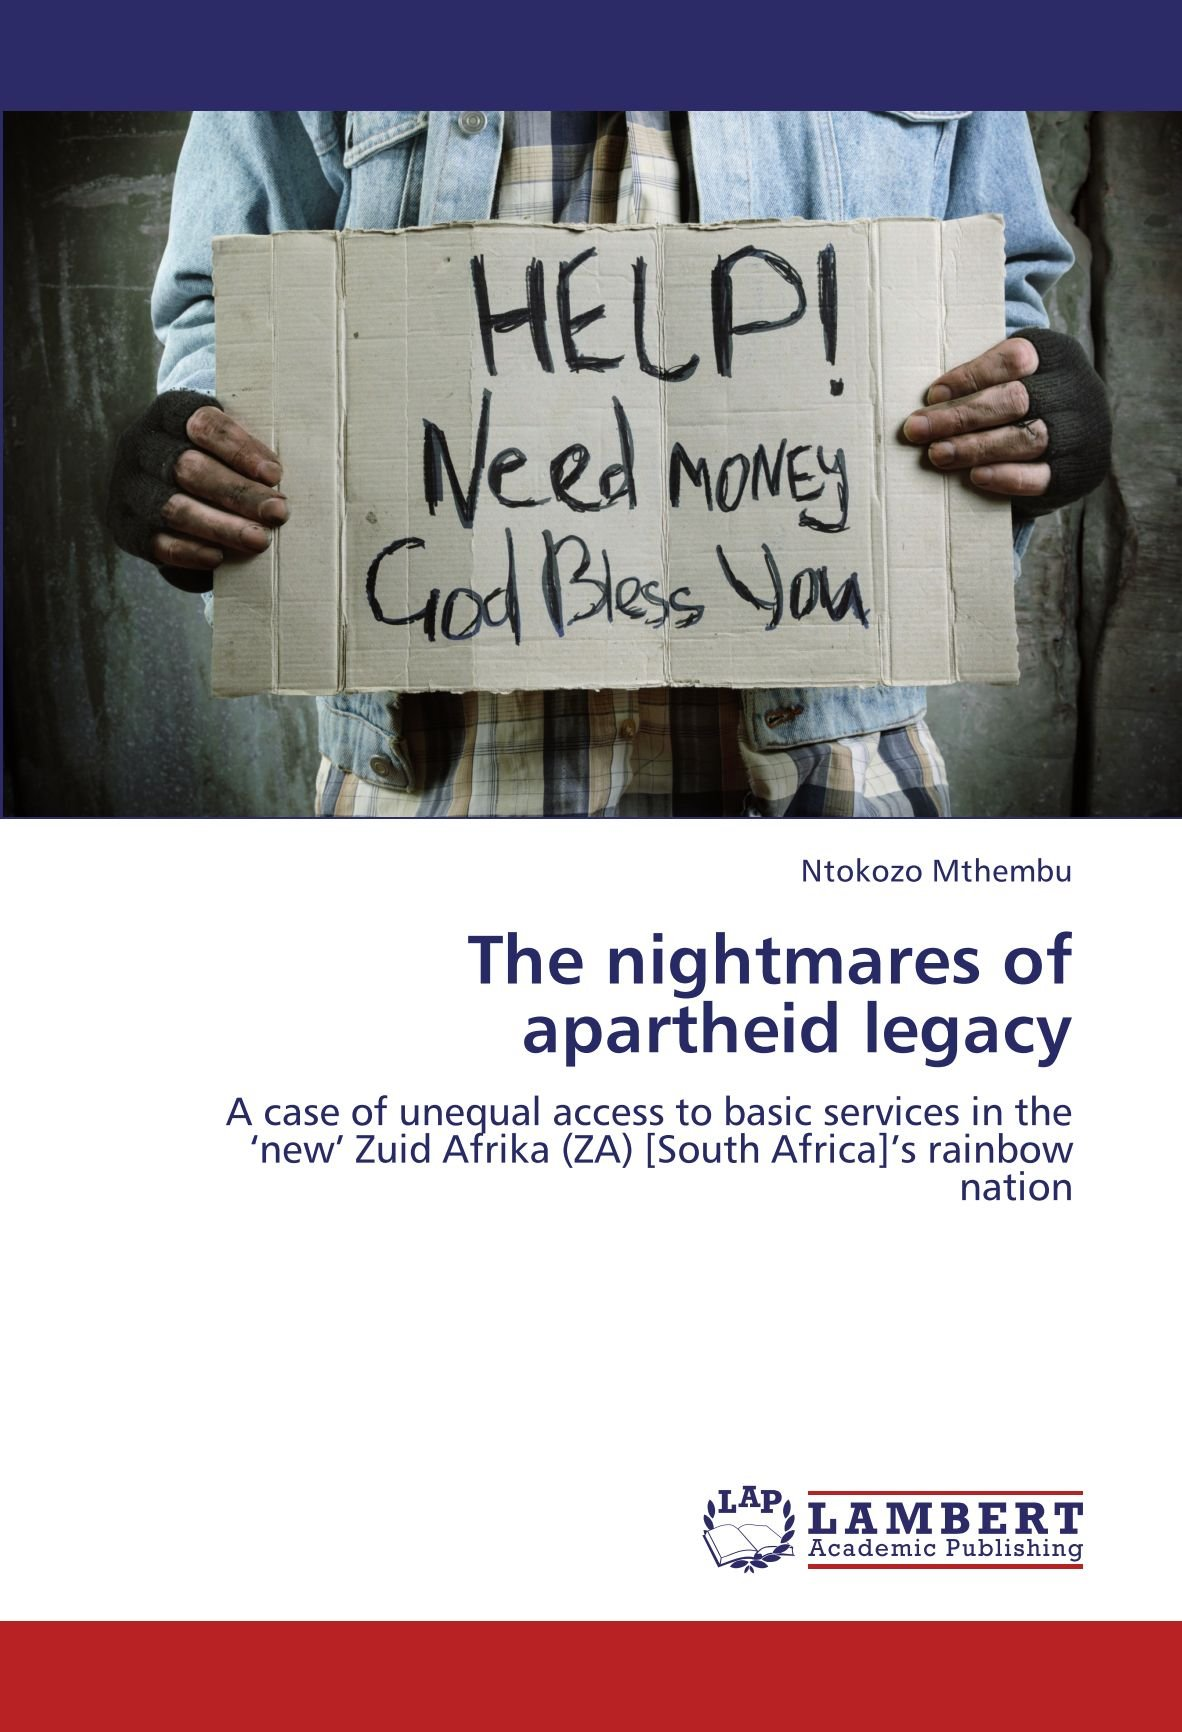 Read Online The nightmares of apartheid legacy: A case of unequal access to basic services in the 'new' Zuid Afrika (ZA) [South Africa]'s rainbow nation pdf